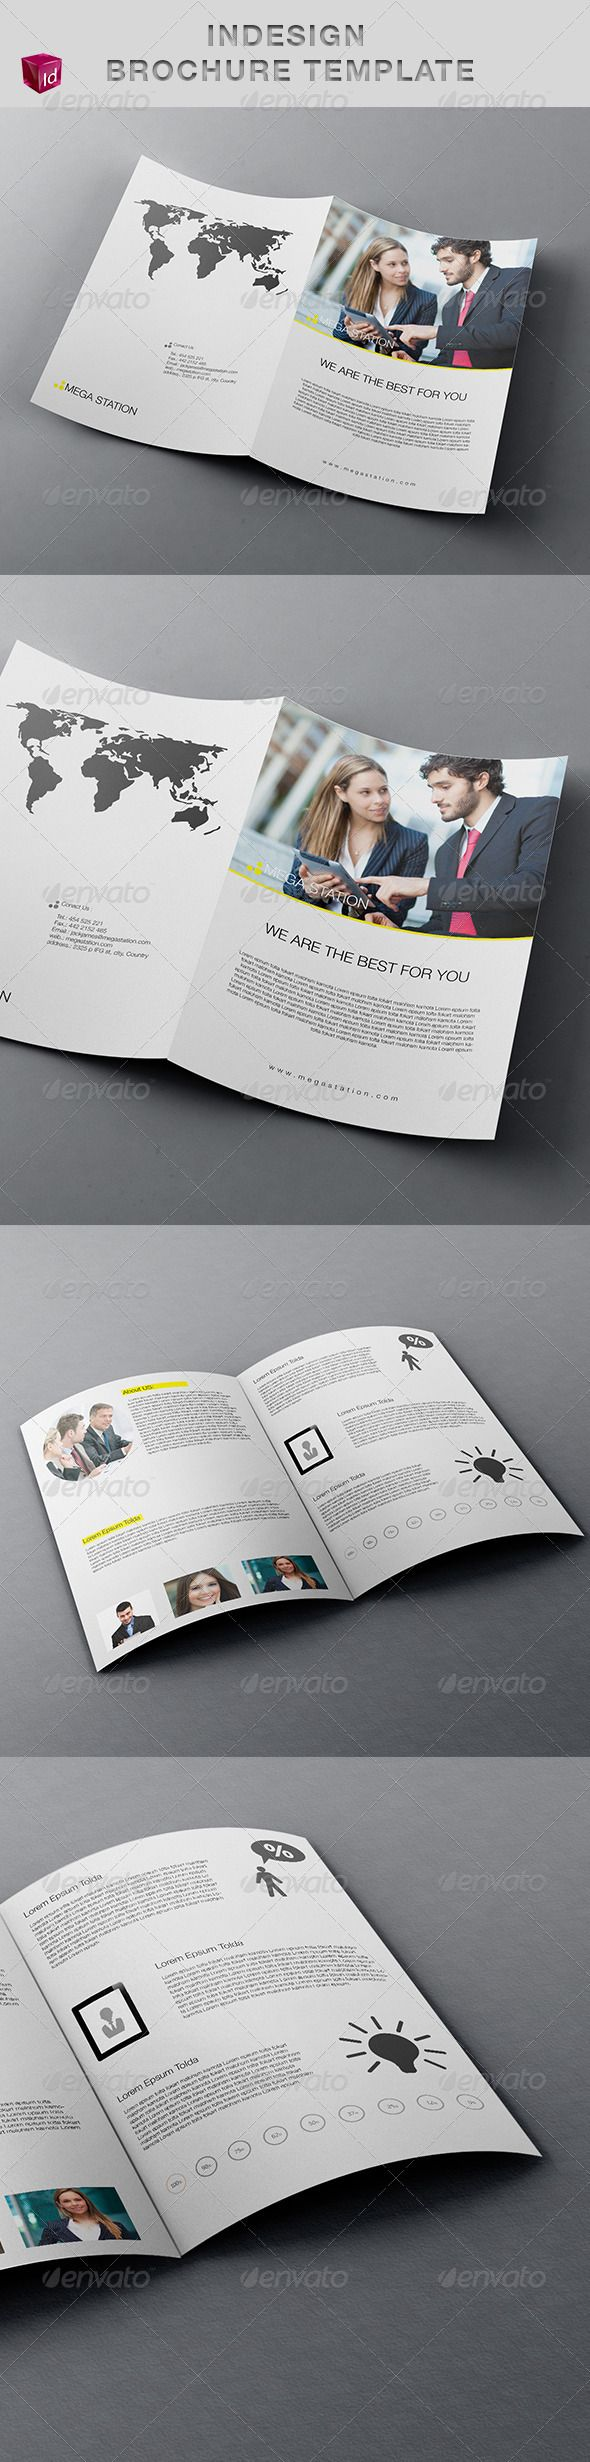 Bi-Fold Brochure Indesign Template   #GraphicRiver           	   	 Bi-Fold Brochure Indesign Template  	 Compatibility:  	 - Adobe Indesign CS4, CS5, CS6  	 Content:  	 - Bi-Fold Brochure 4 pages - Very easy to change or edit info - Fully layered cmyk - ready for printing - easy to add your own photos  	 Font Used:  	 - helvetica  	 you can find fonts here:  	 -  .myfonts /fonts/adobe/helvetica/  	 don't forget to rate my item  	 for any help you can feel free to message me directly :))…